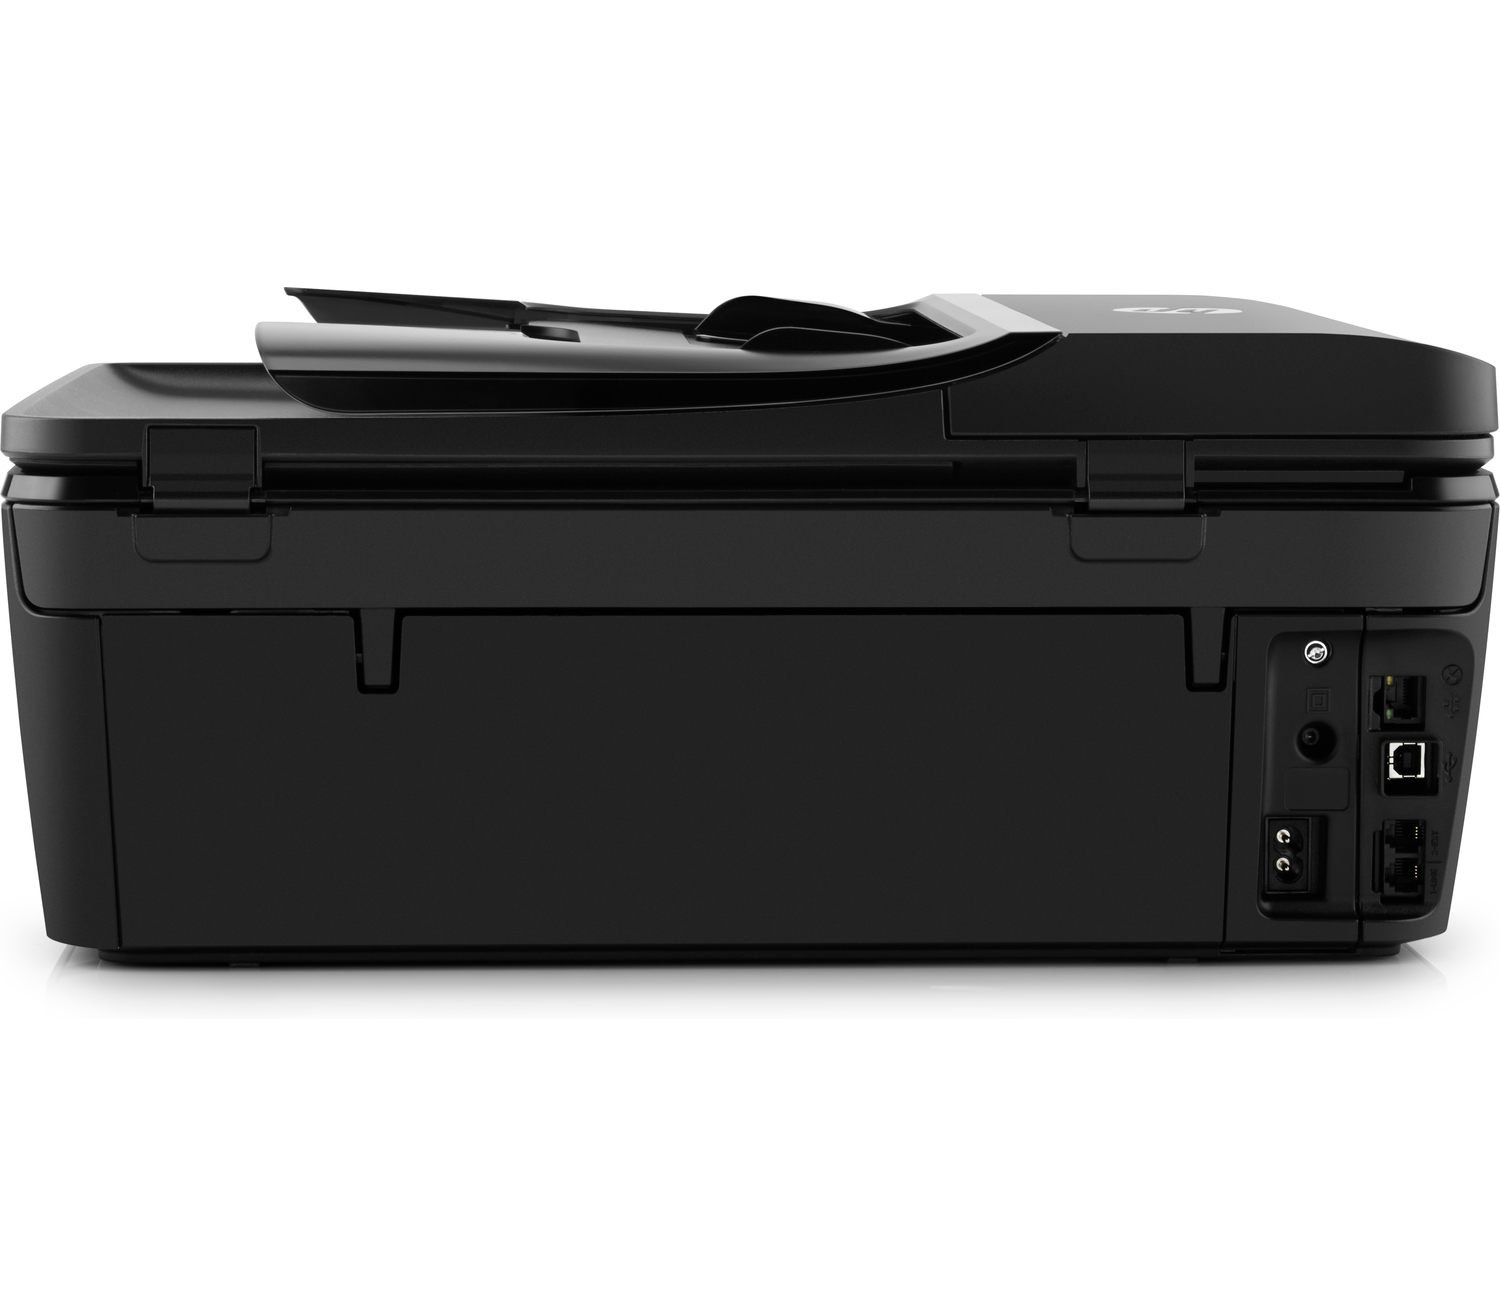 HP ENVY 7644 e-All-in-One Photo Quality Inkjet Printer, wireless printing, mobile phone compatible, in black (Renewed) by HP (Image #7)